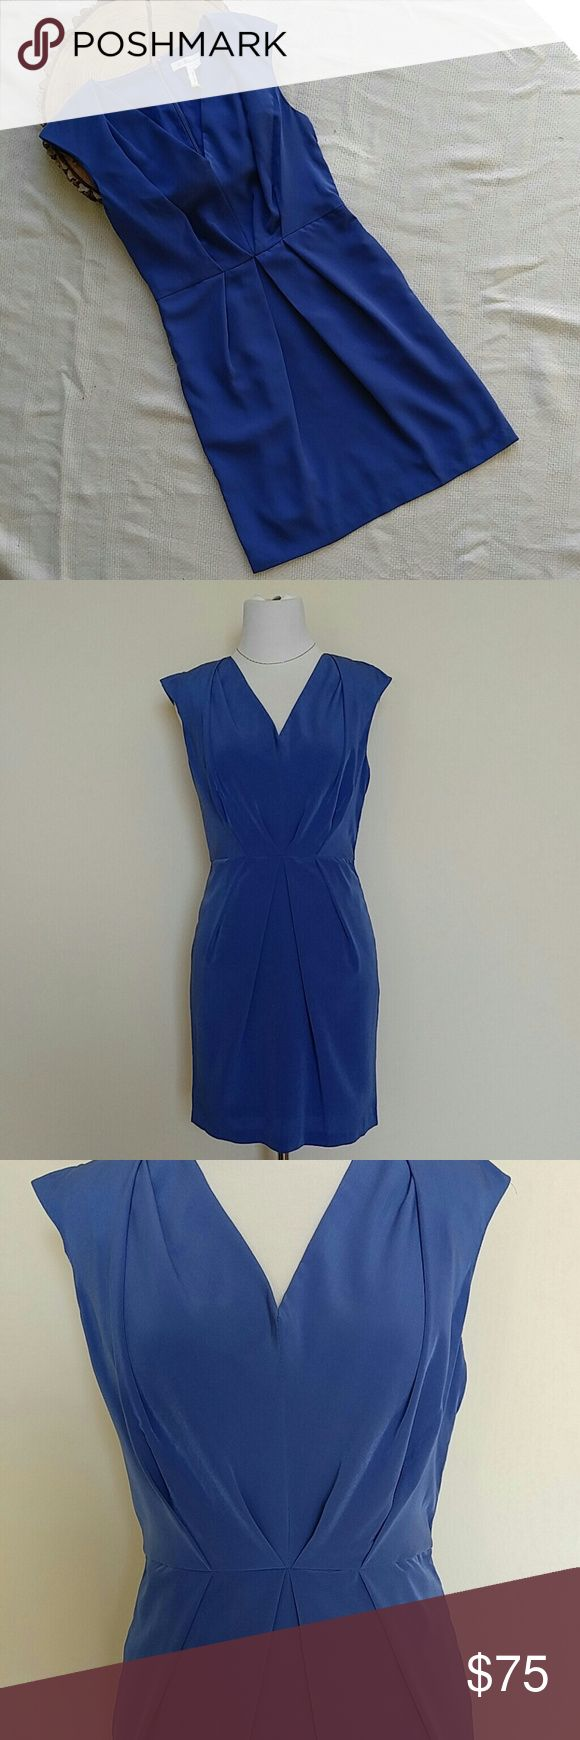 BCBGeneration Cocktail Dress Azure blue cocktail dress with pretty pleating! NWT! Thanks for looking! BCBGeneration Dresses Mini